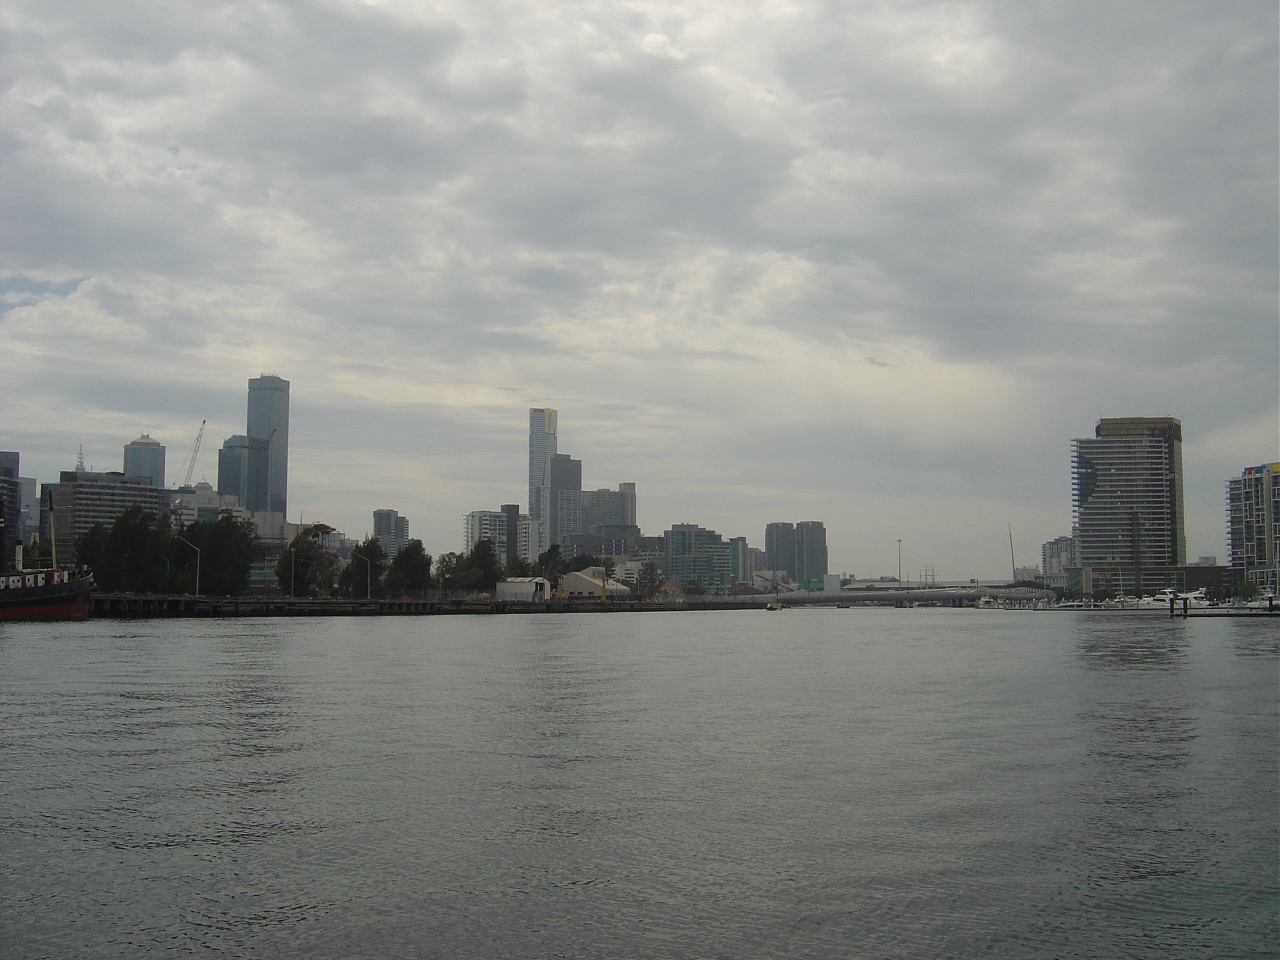 Australia images Yarra River - Melbourne HD wallpaper and background photos